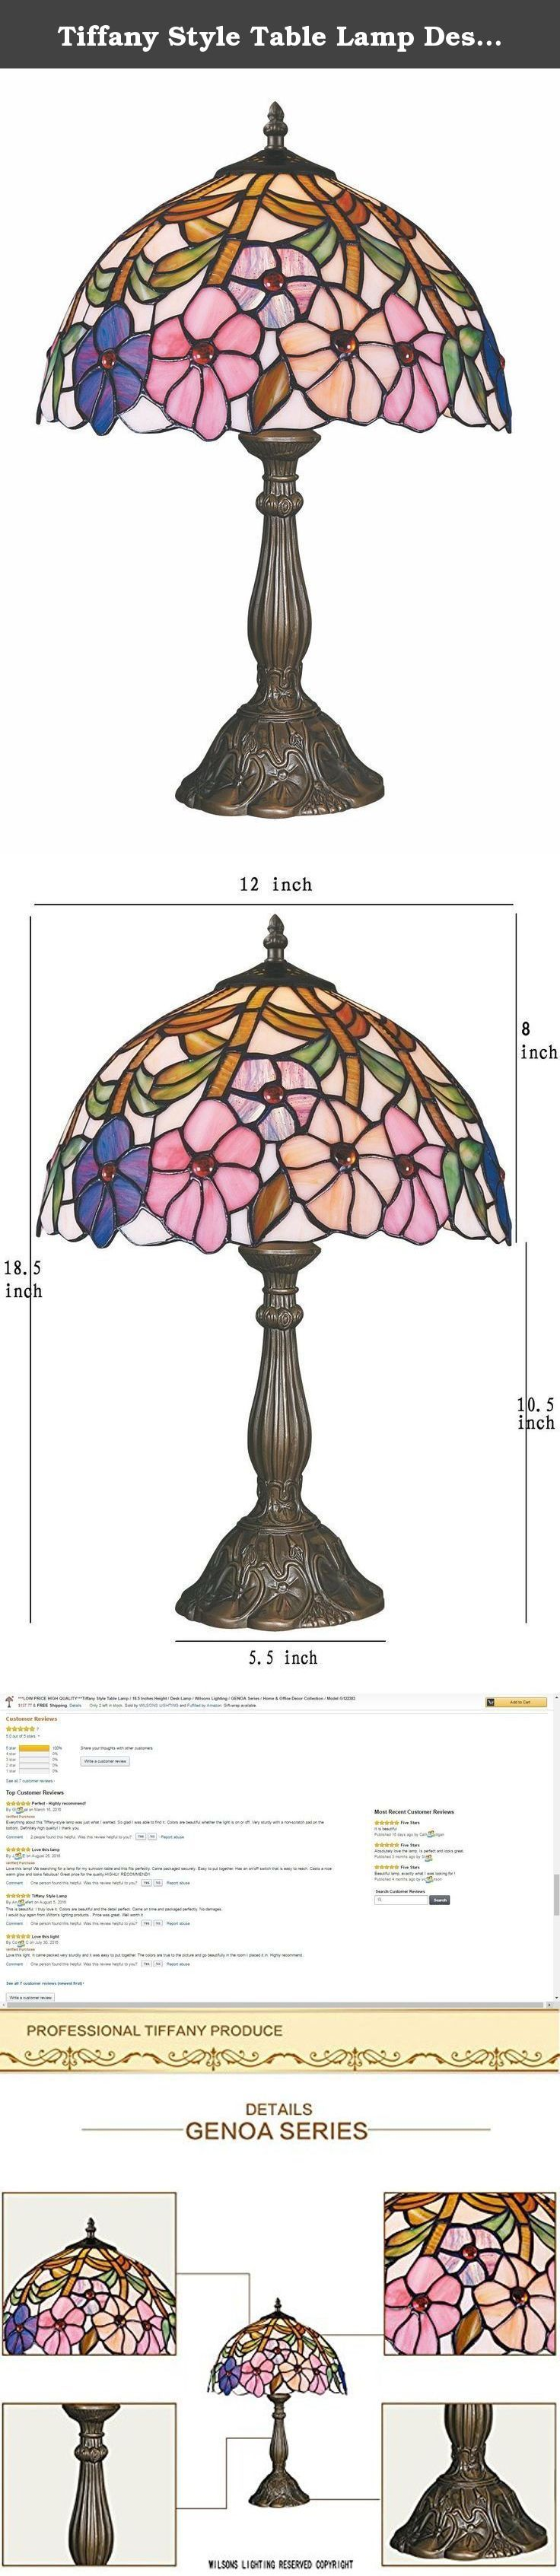 Tiffany Style Table Lamp Desk Lamp 18.5 Inch Height GENOA Series Home & Office Decor Collection Wilsons Lighting WL122383. GENOA Series Tiffany-style table lamp, it's an elegant addition to your room, makes painting, executive desk, sofa area, bedside, hallway, mini-bar, entertainment room or office more antique stylish. With floral motif reminiscent of verdant countrysides, the natural aesthetic forms perfectly to the Victorian elegance of Tiffany art glass. This fixture offers a soft...